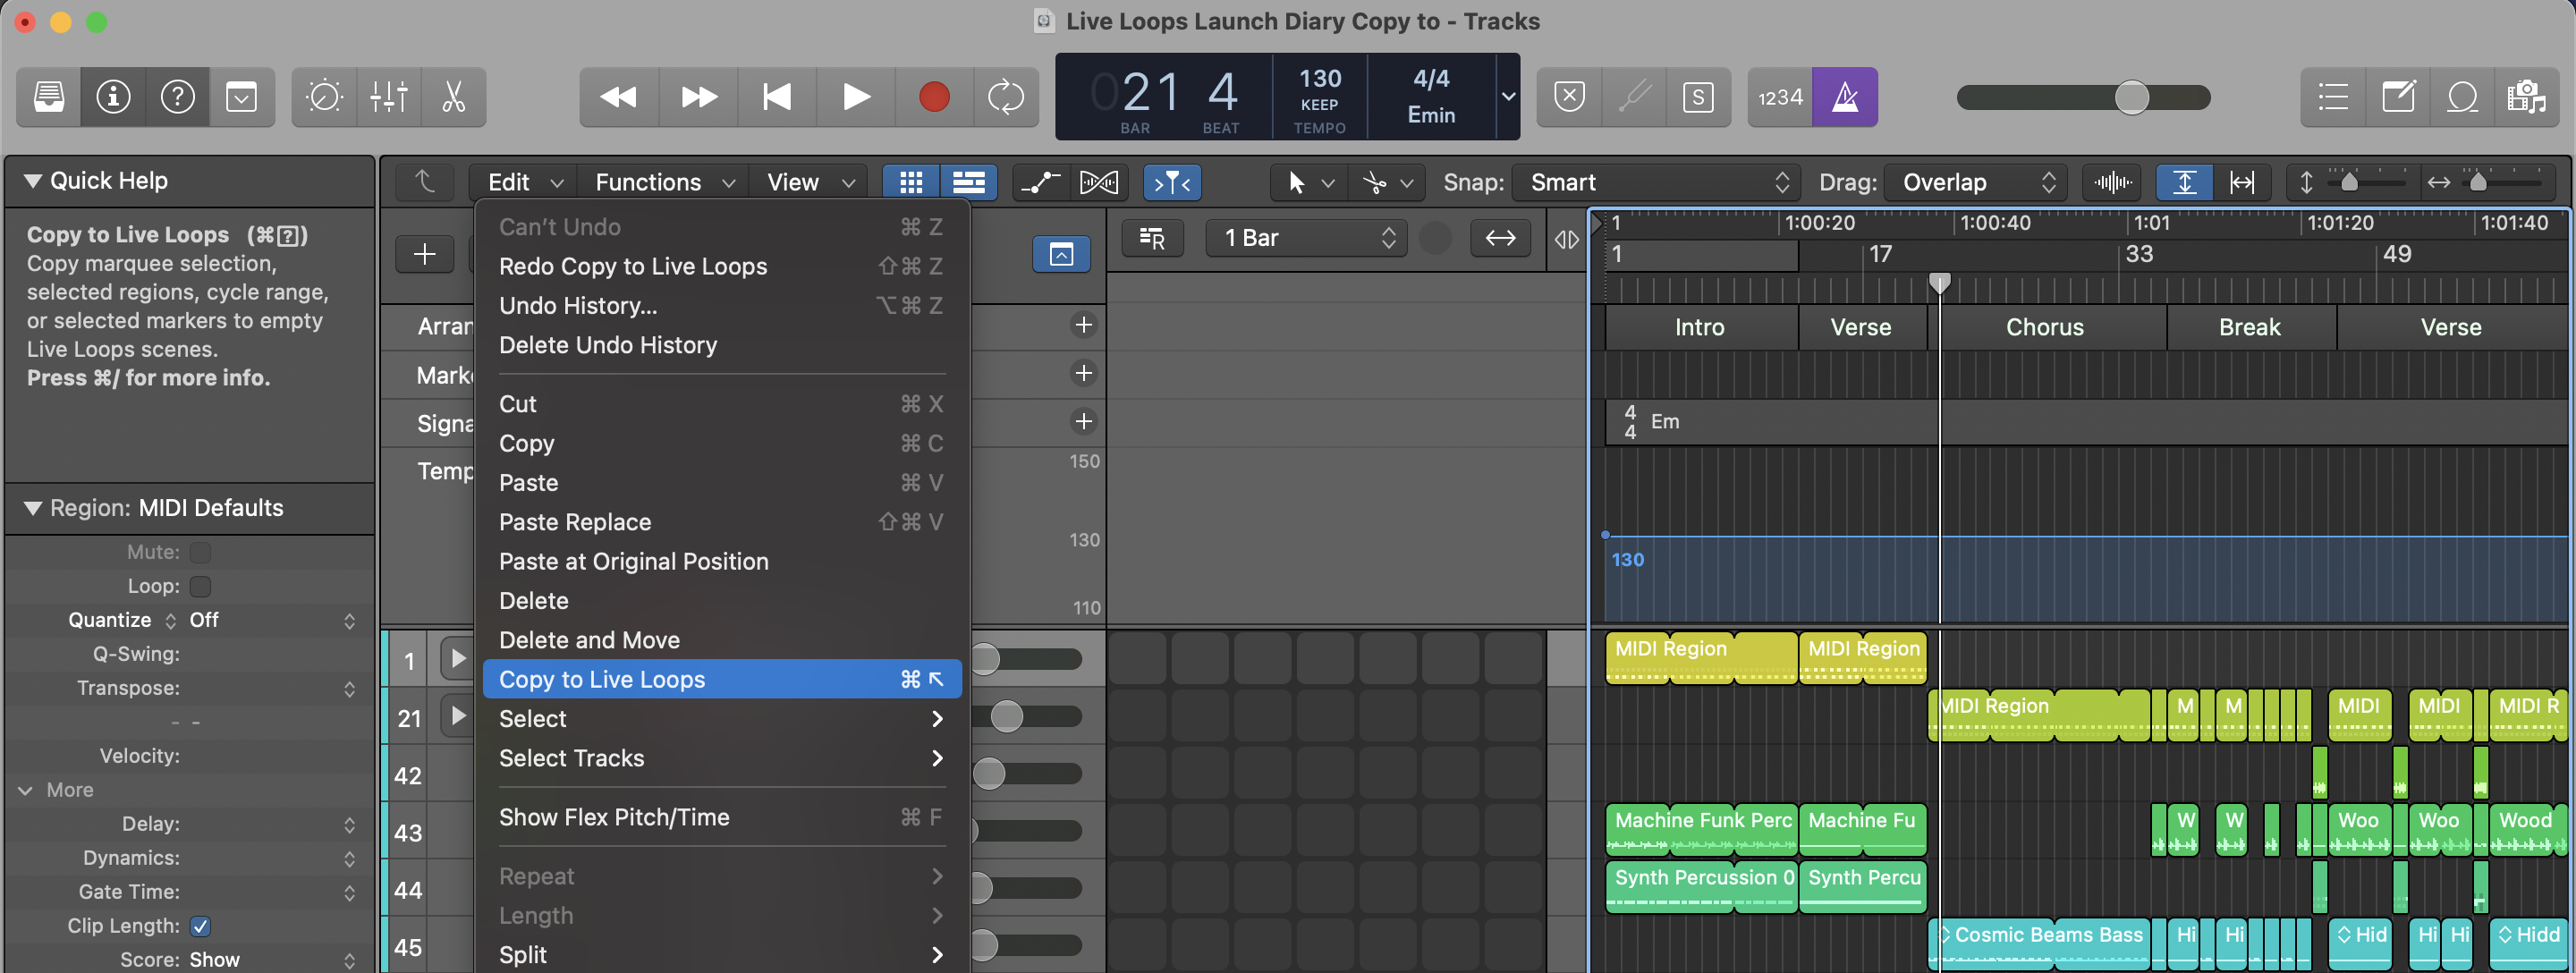 Copy to Live Loops in Logic Pro